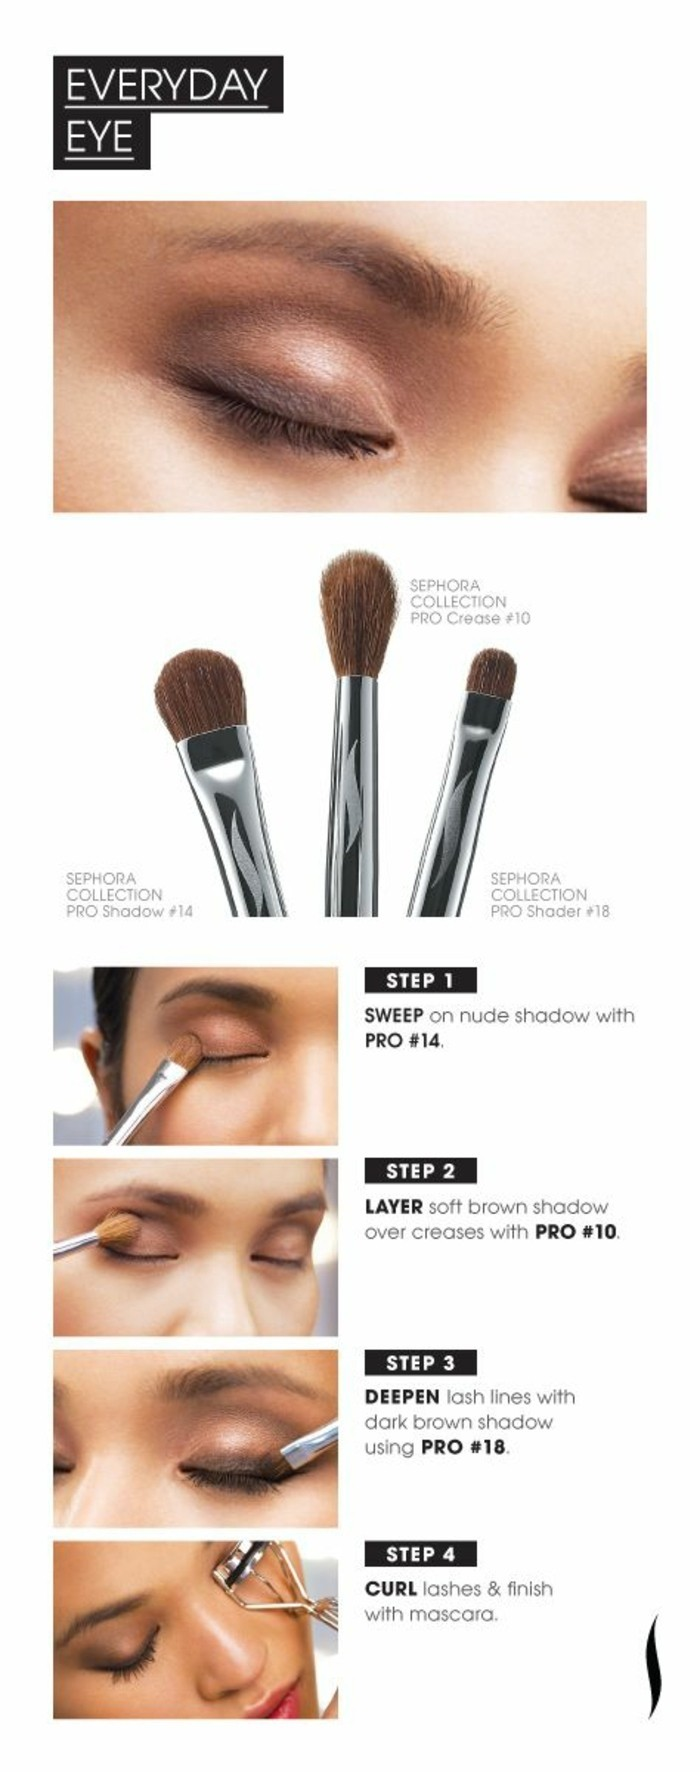 000-sephora-maquillage-tuto-maquillage-pour-yeux-marrons-fard-a-paupiere-yeux-marrons